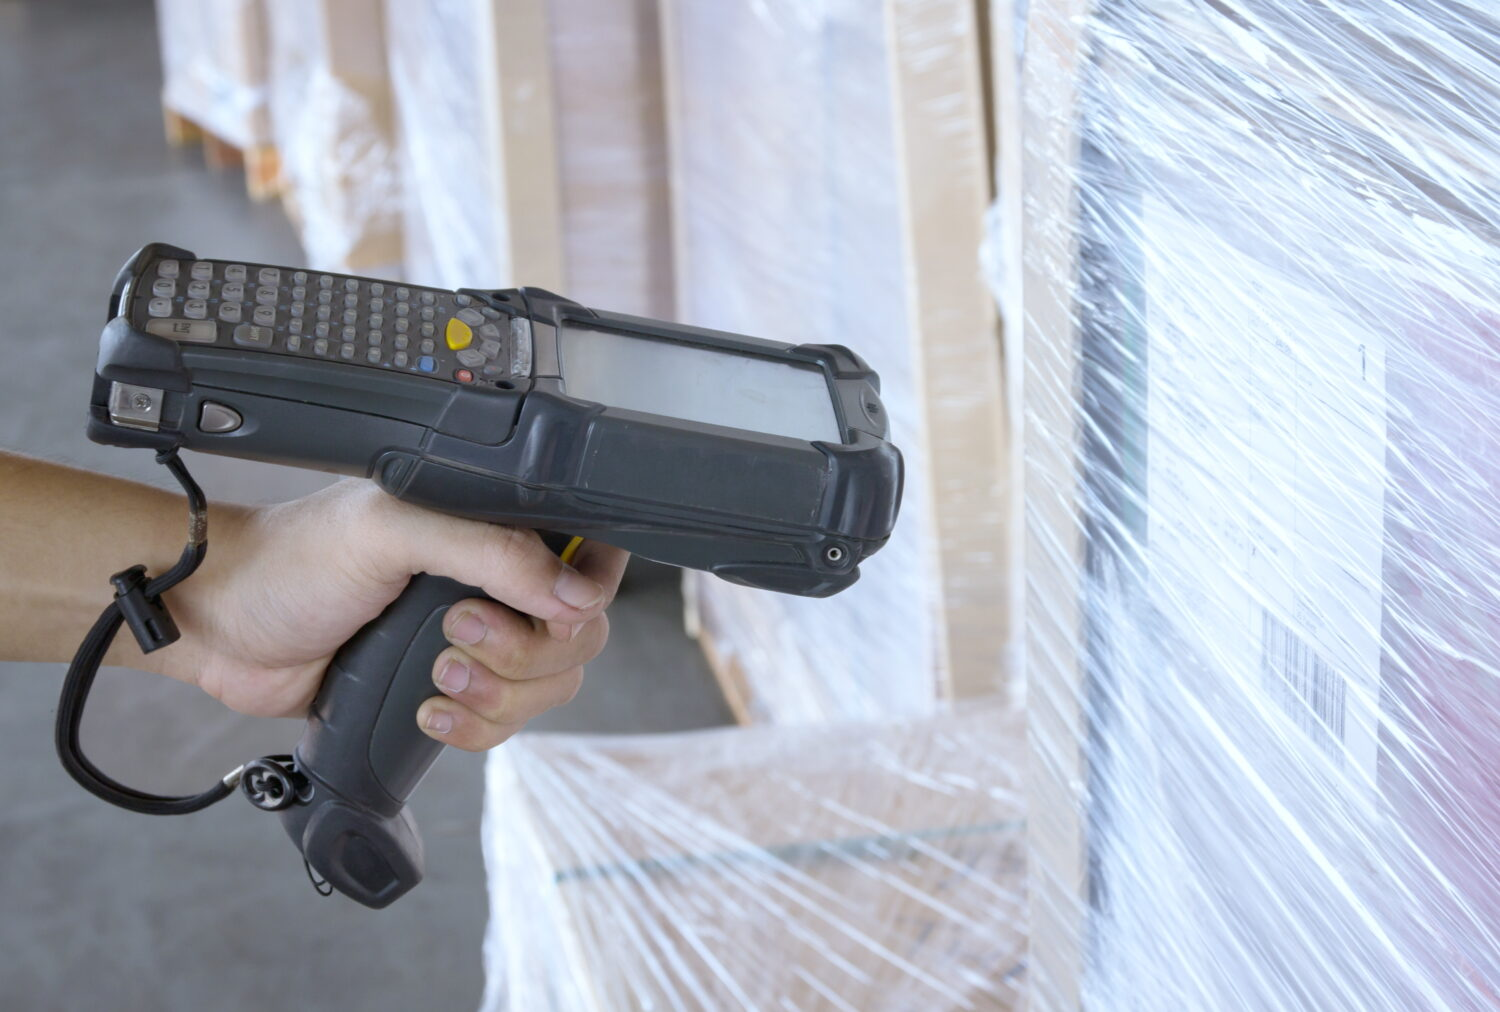 handheld scanner in a warehouse